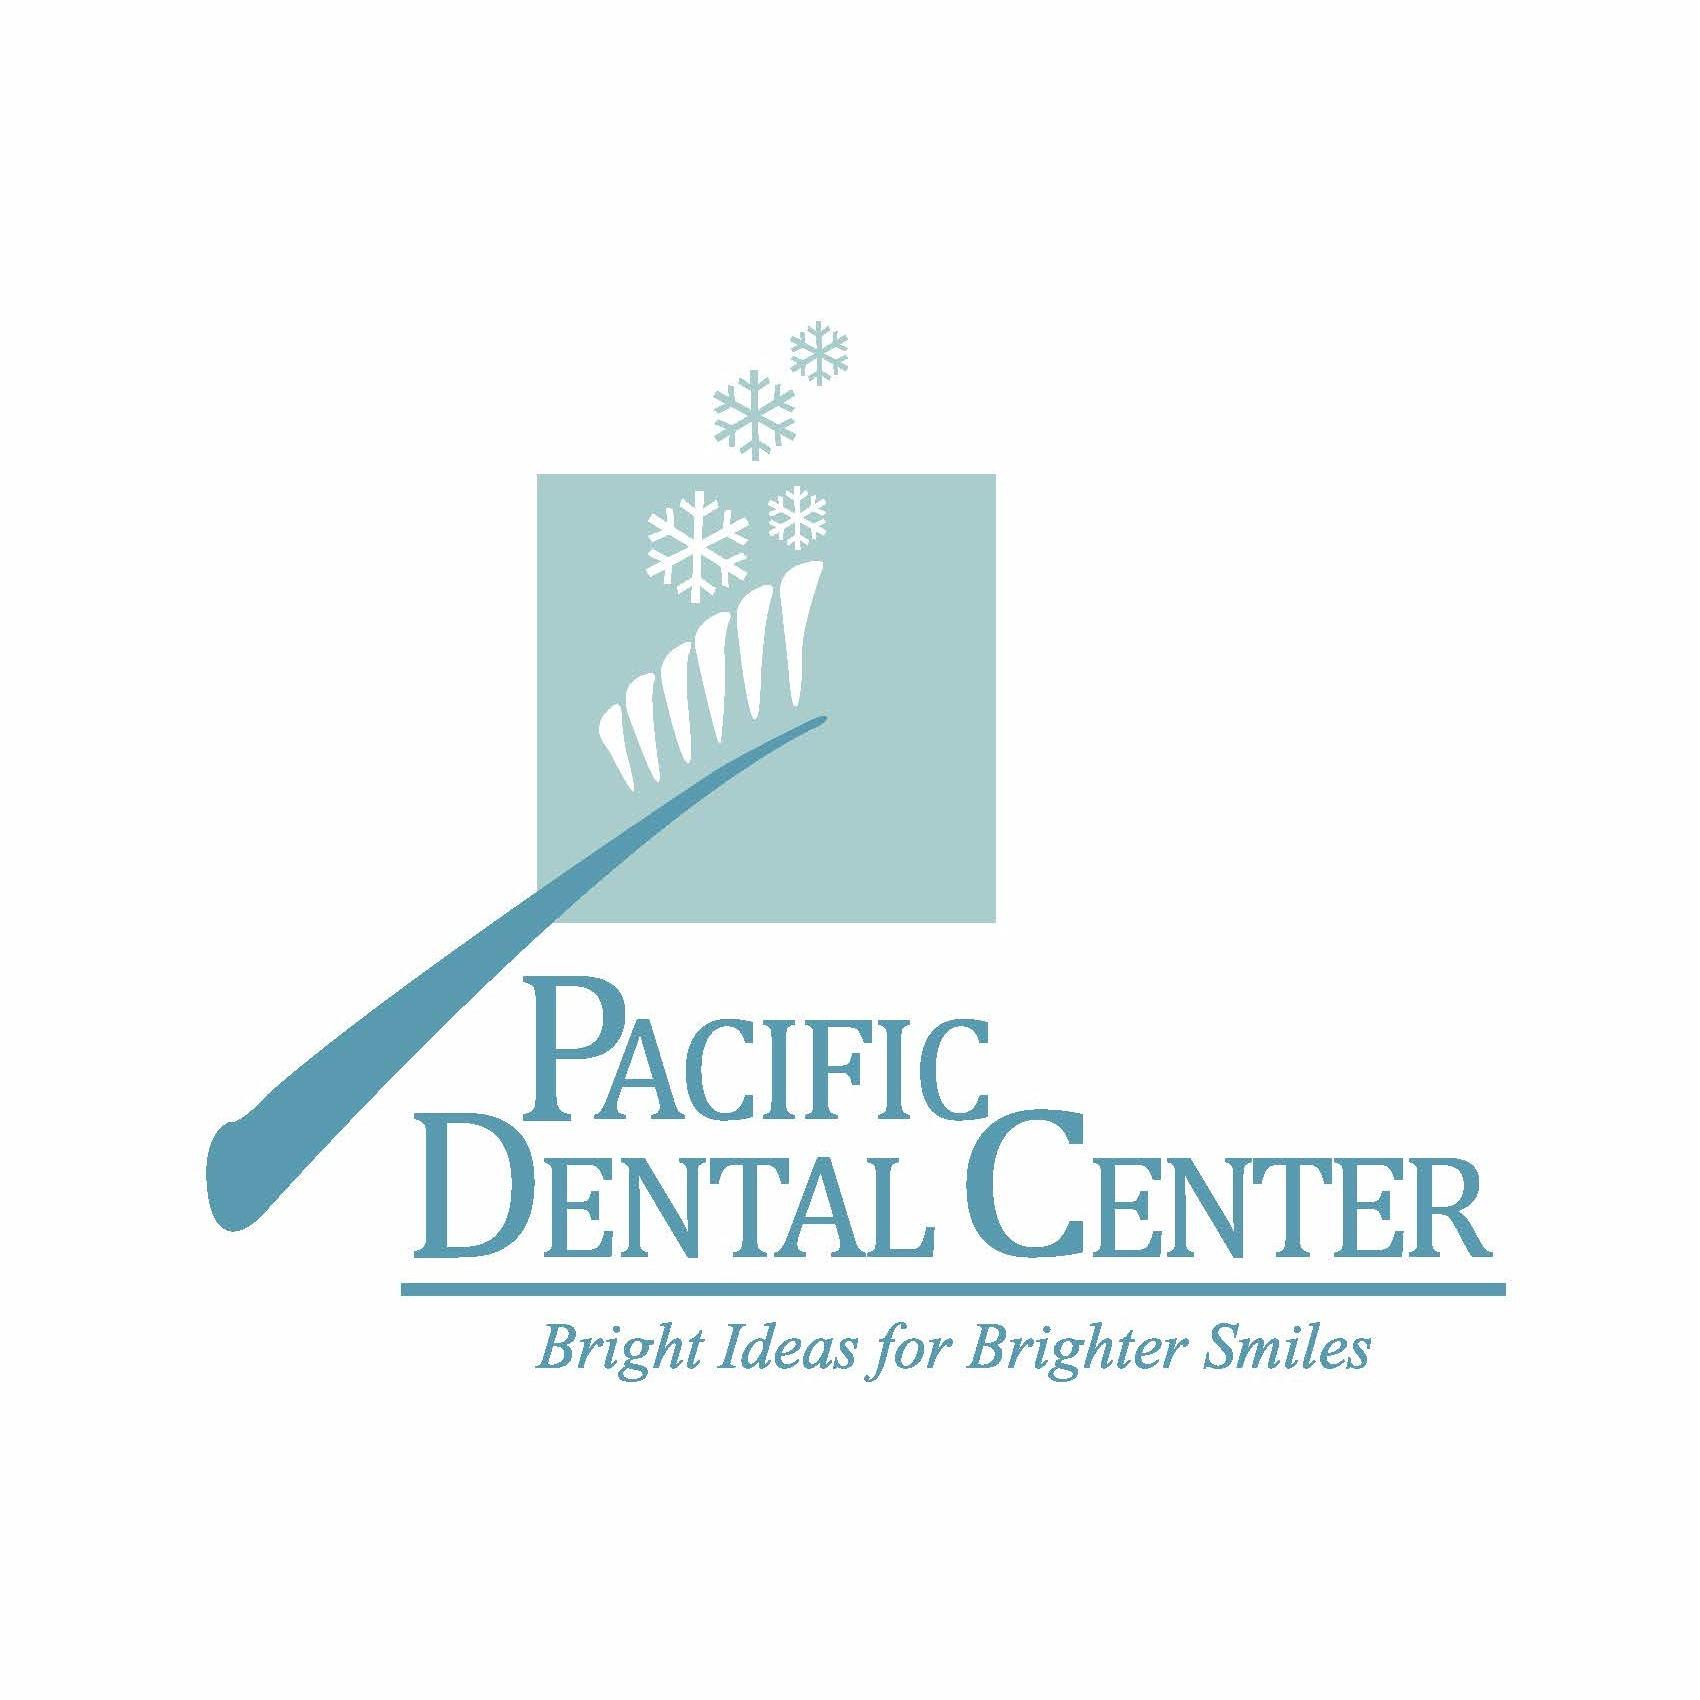 Pacific Dental Center